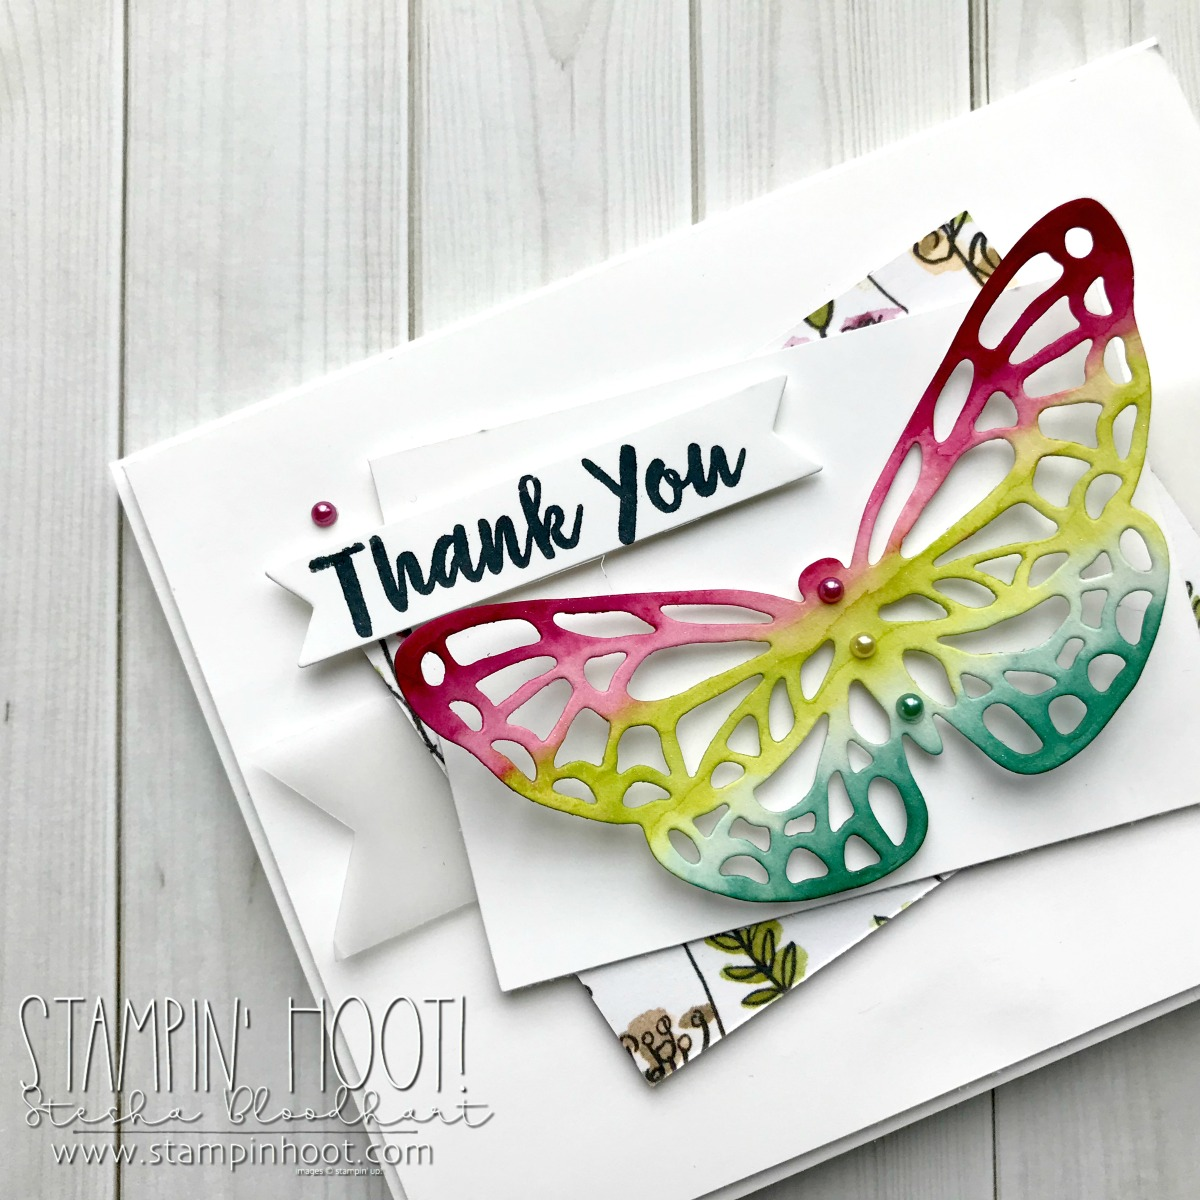 Abstract Impressions Bundle Butterfly Die Cut from the 2018-2019 Annual Stampin' Up! Catalog. Handmade Thank you card by Stesha Bloodhart, Stampin' Hoot! for #tgifc163 Sketch Challenge. #steshabloodhart #stampinhoot